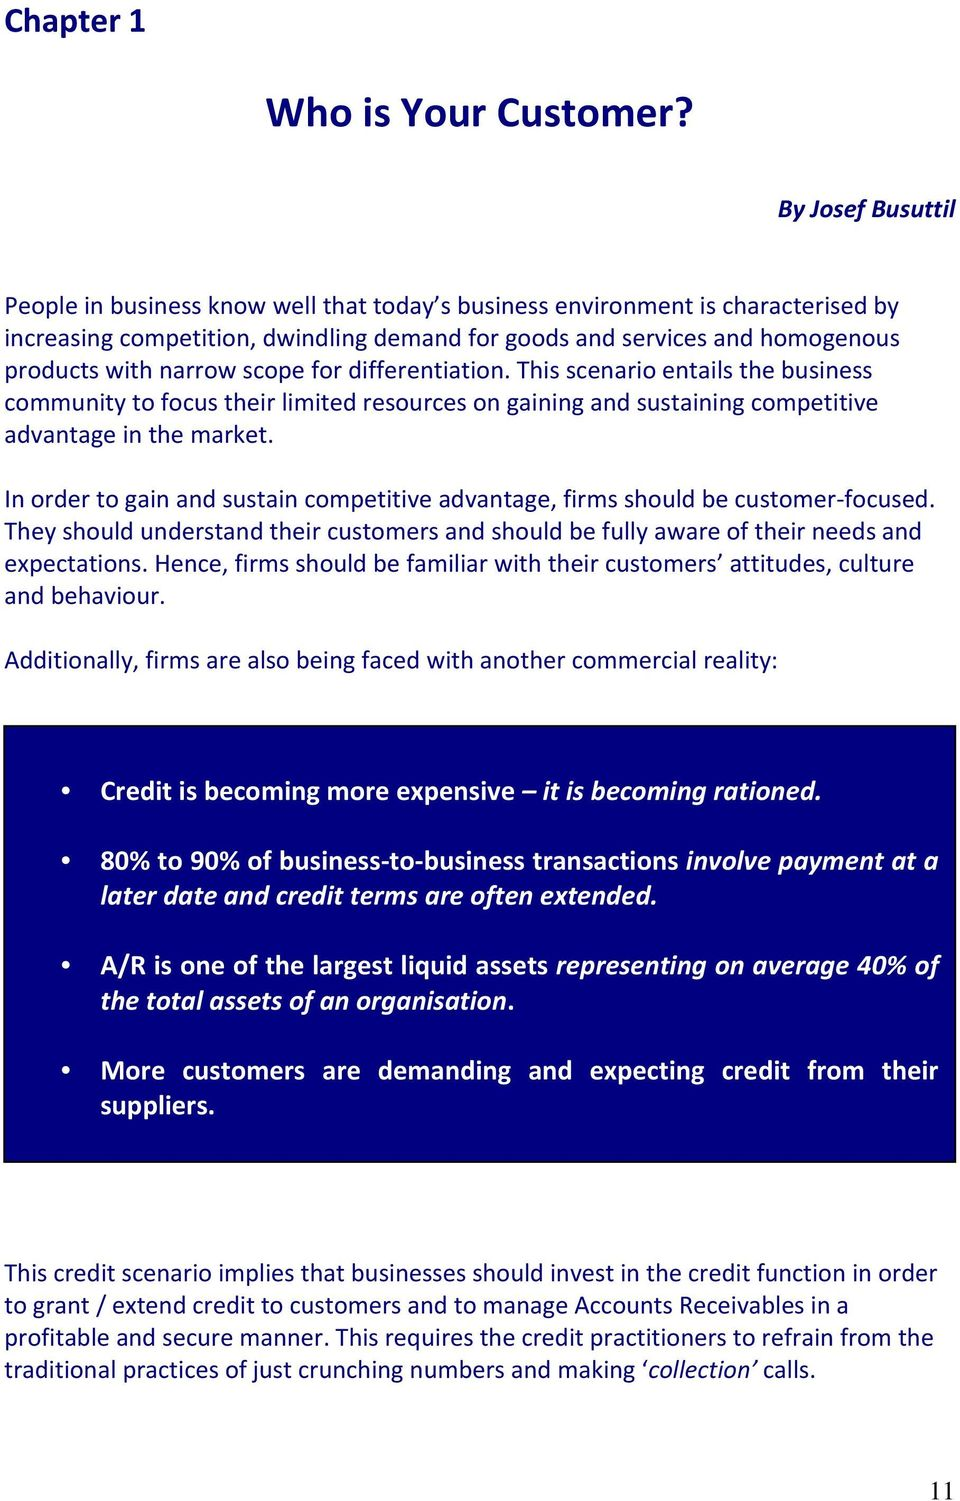 narrow scope for differentiation. This scenario entails the business community to focus their limited resources on gaining and sustaining competitive advantage in the market.